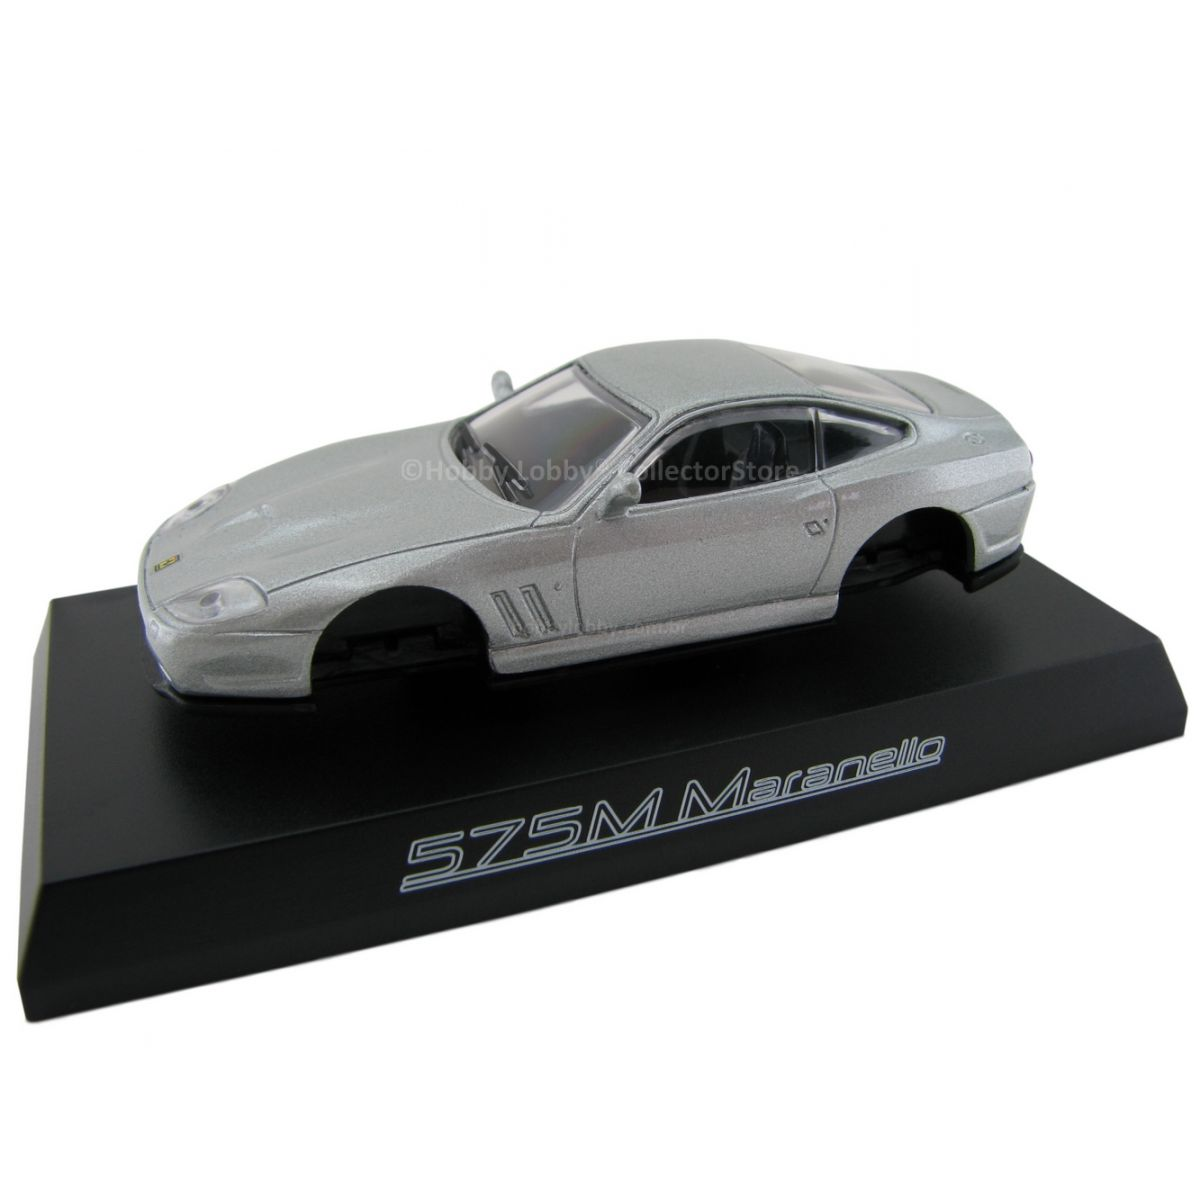 Kyosho - Ferrari Minicar Collection II - Ferrari 575M Maranello [Prata]  - Hobby Lobby CollectorStore